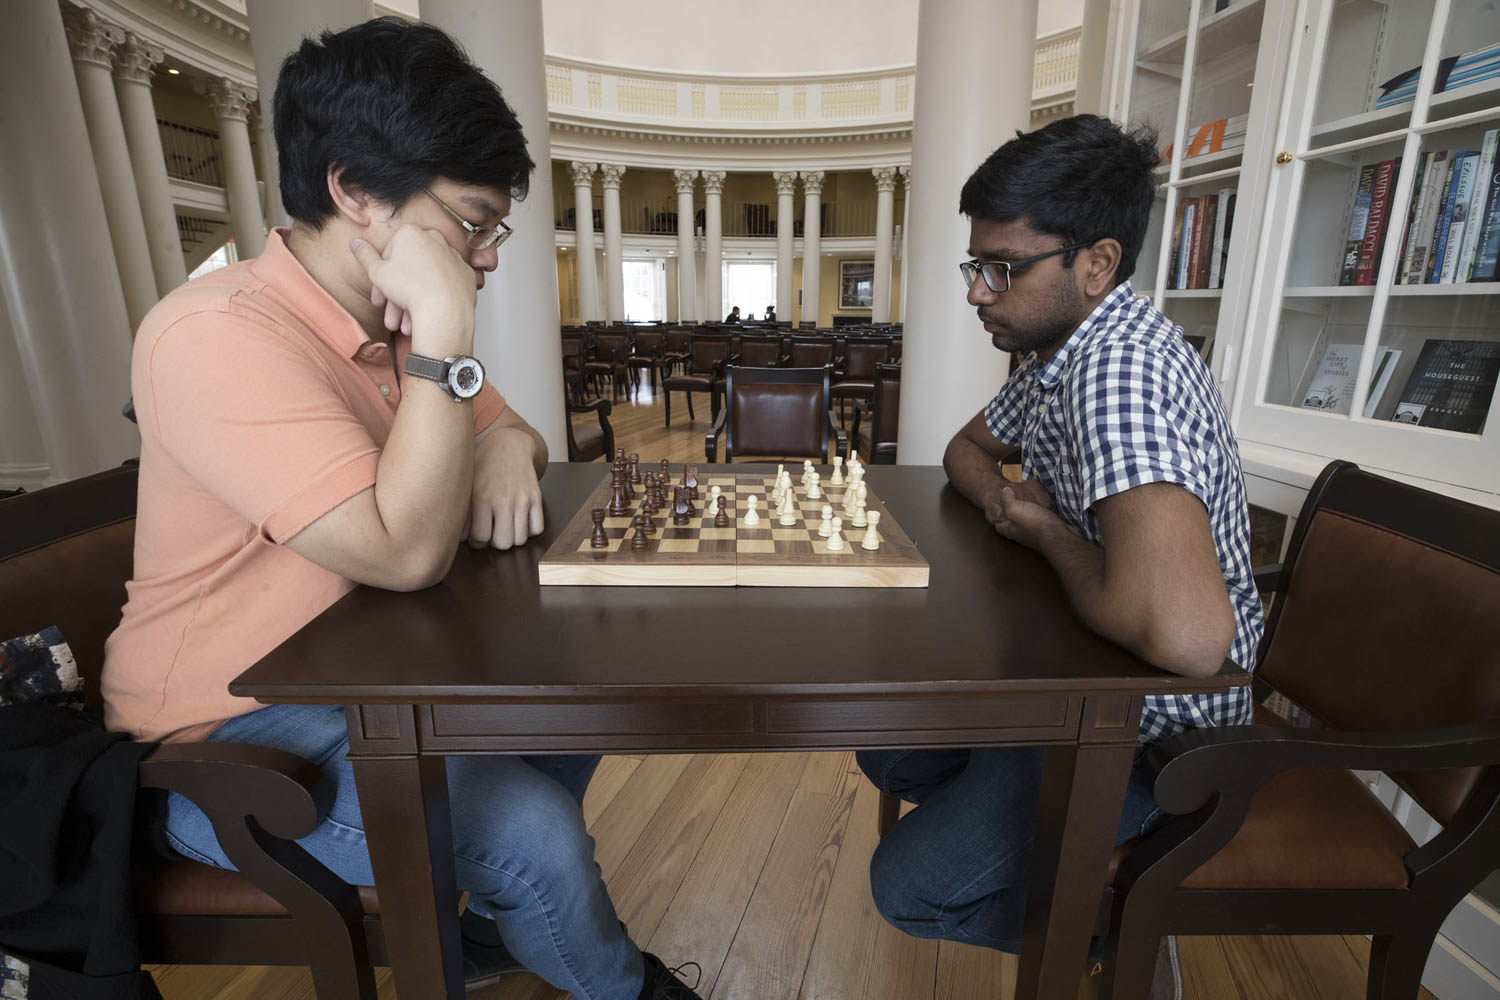 The UVA Chess Club meets Wednesdays from 8 to 10 p.m. in Newcomb Hall, room 177, and welcomes anyone interested in learning the game.